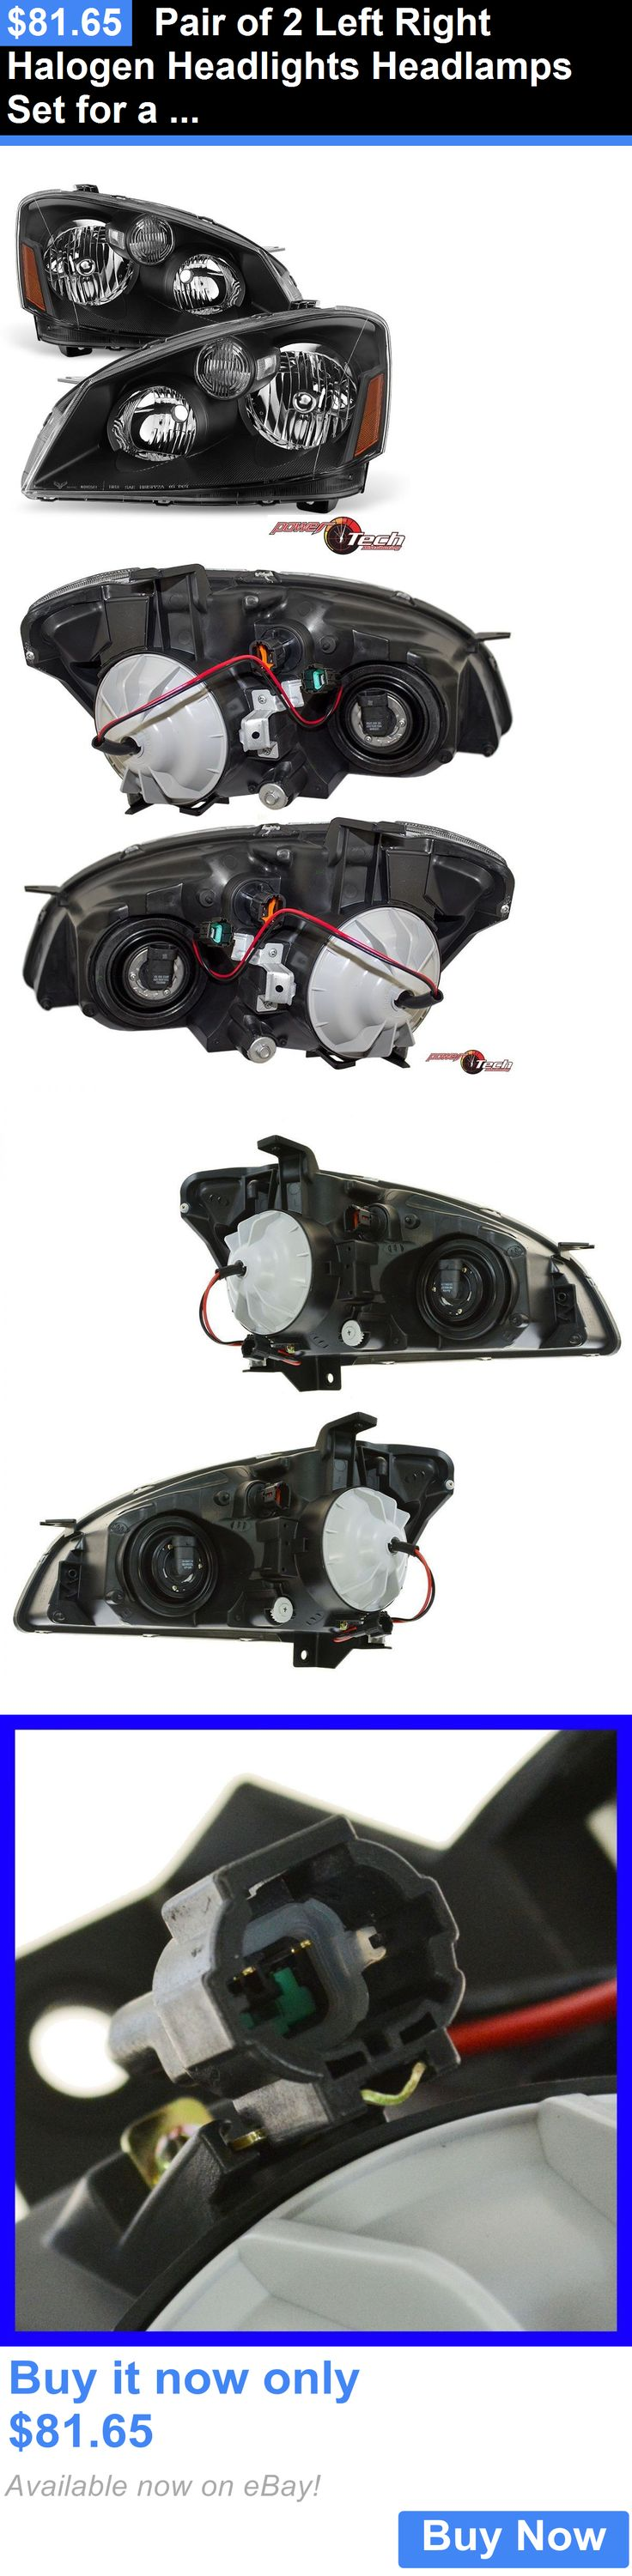 auto parts - general: Pair Of 2 Left Right Halogen Headlights Headlamps Set For A 05-06 Nissan Altima BUY IT NOW ONLY: $81.65